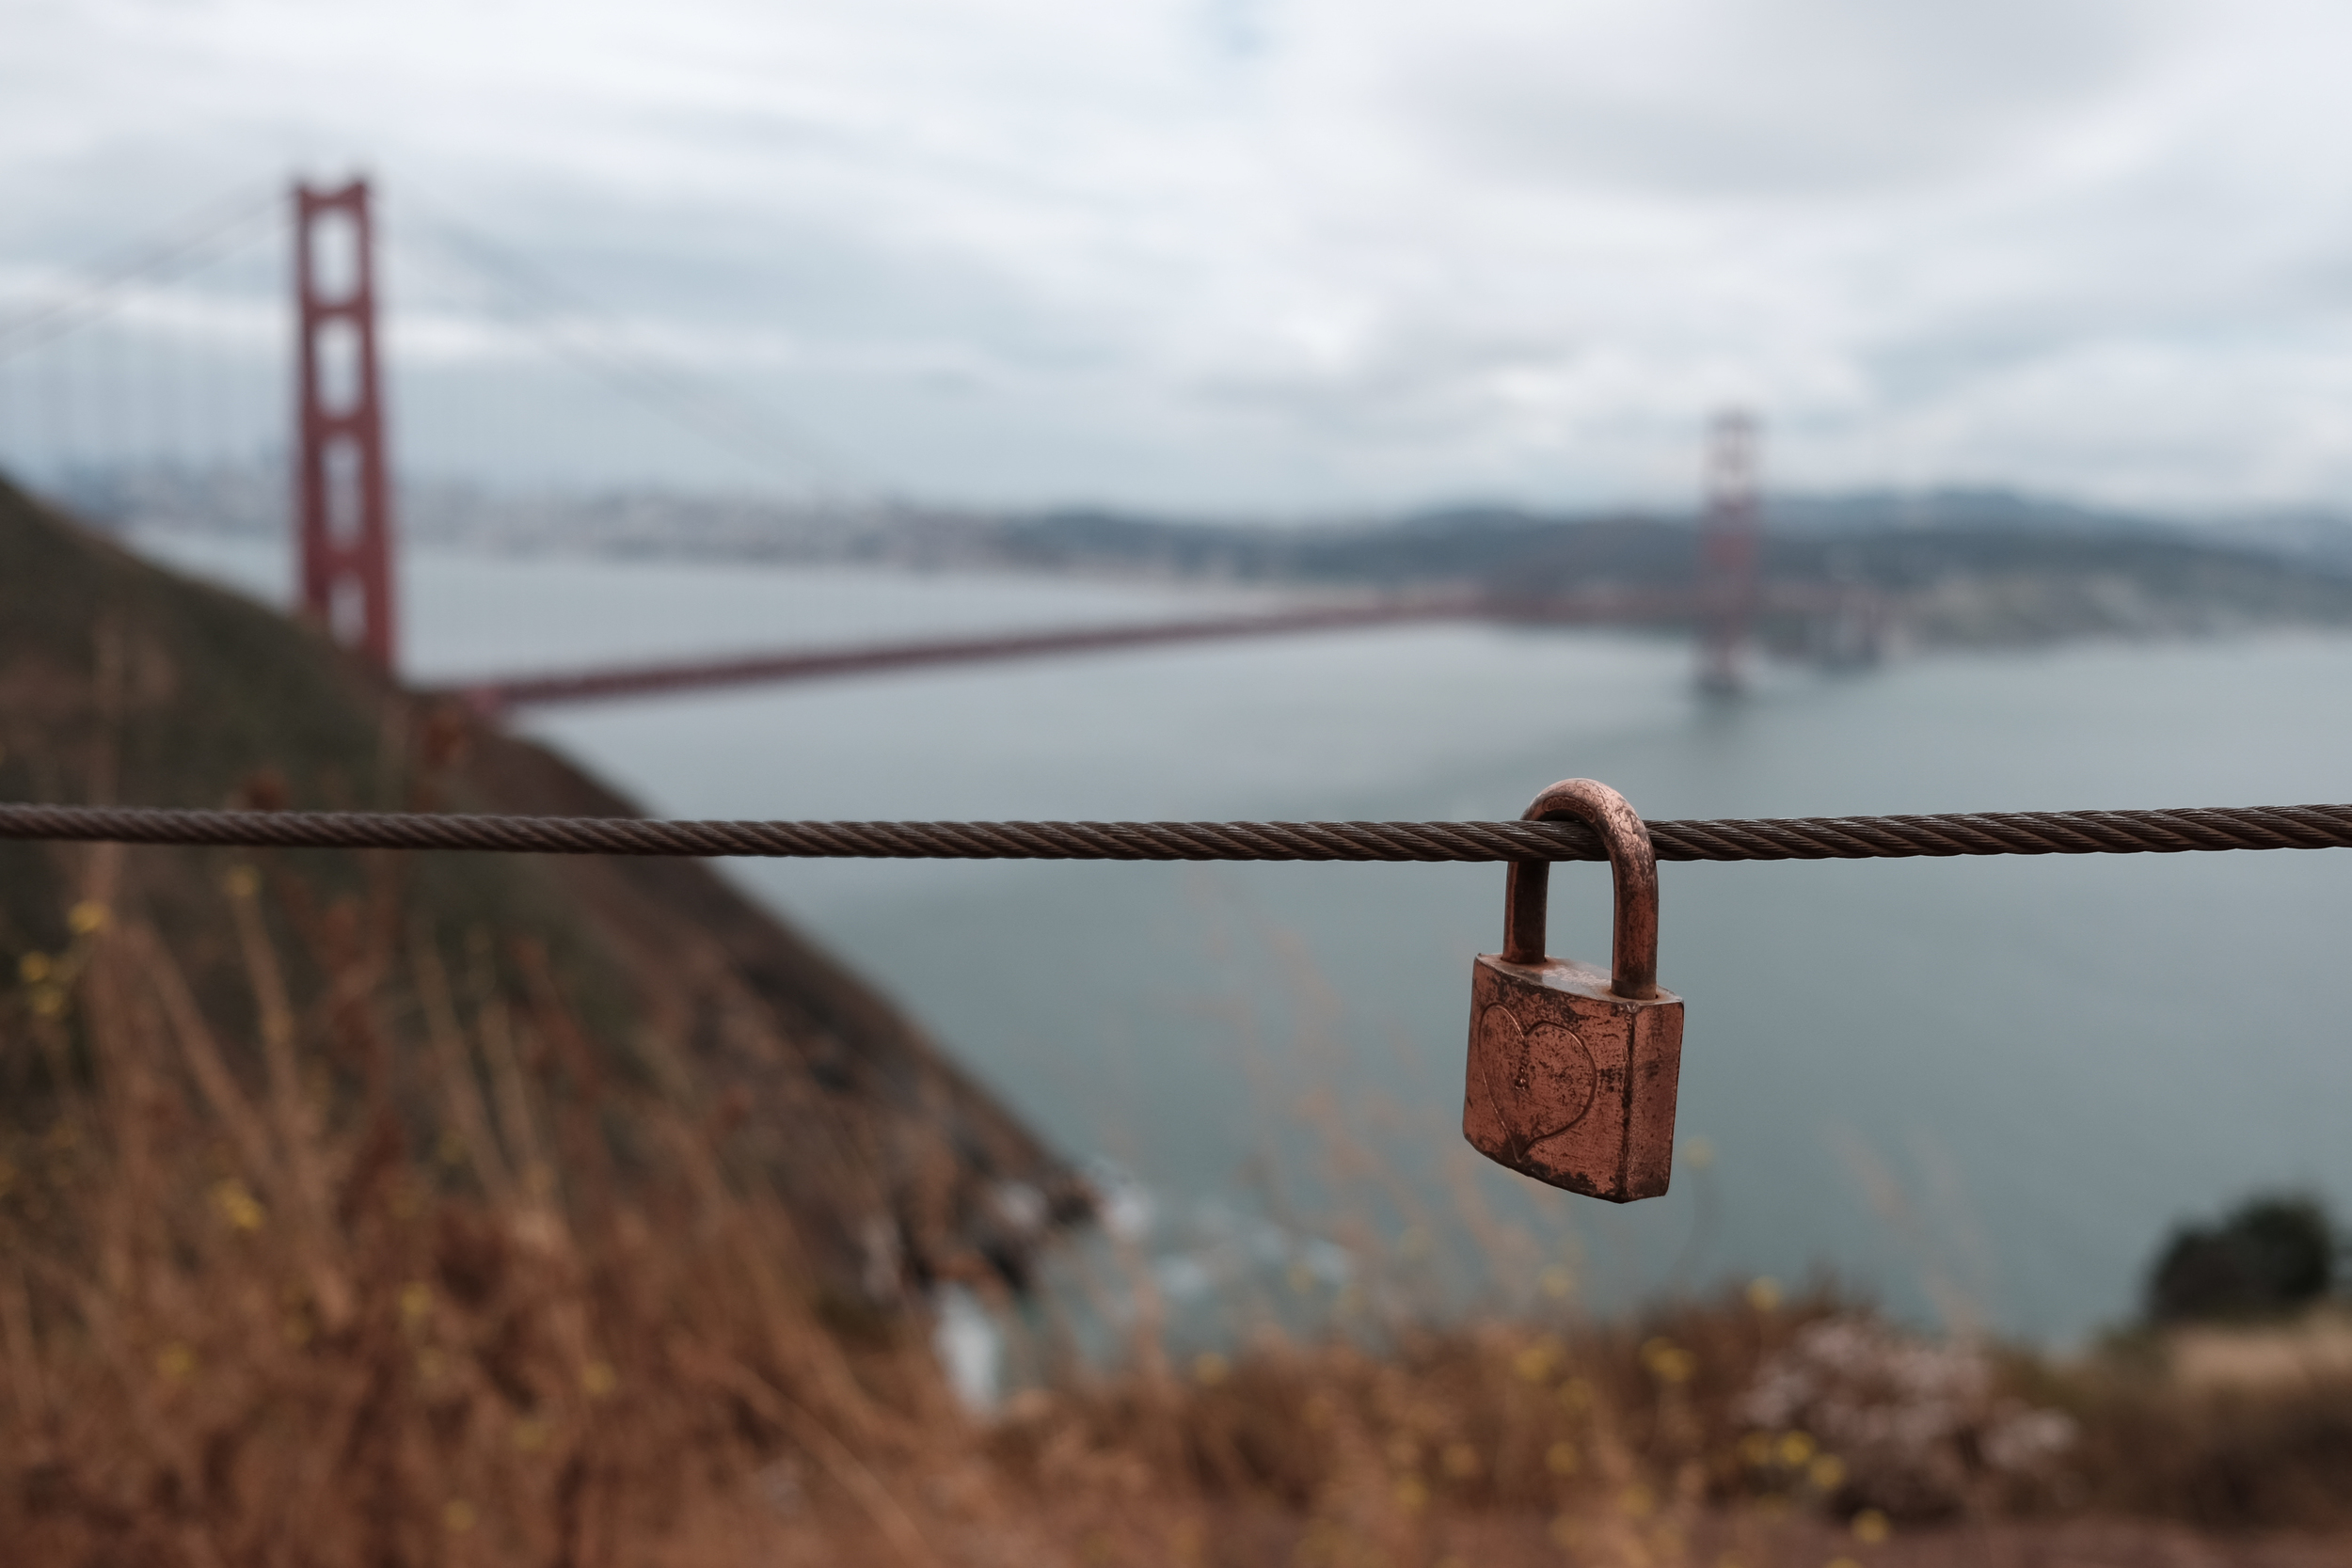 Lock attached to fence cable, located at a viewpoint above the Golden Gate Bridge, Marin Headlands, June 2016